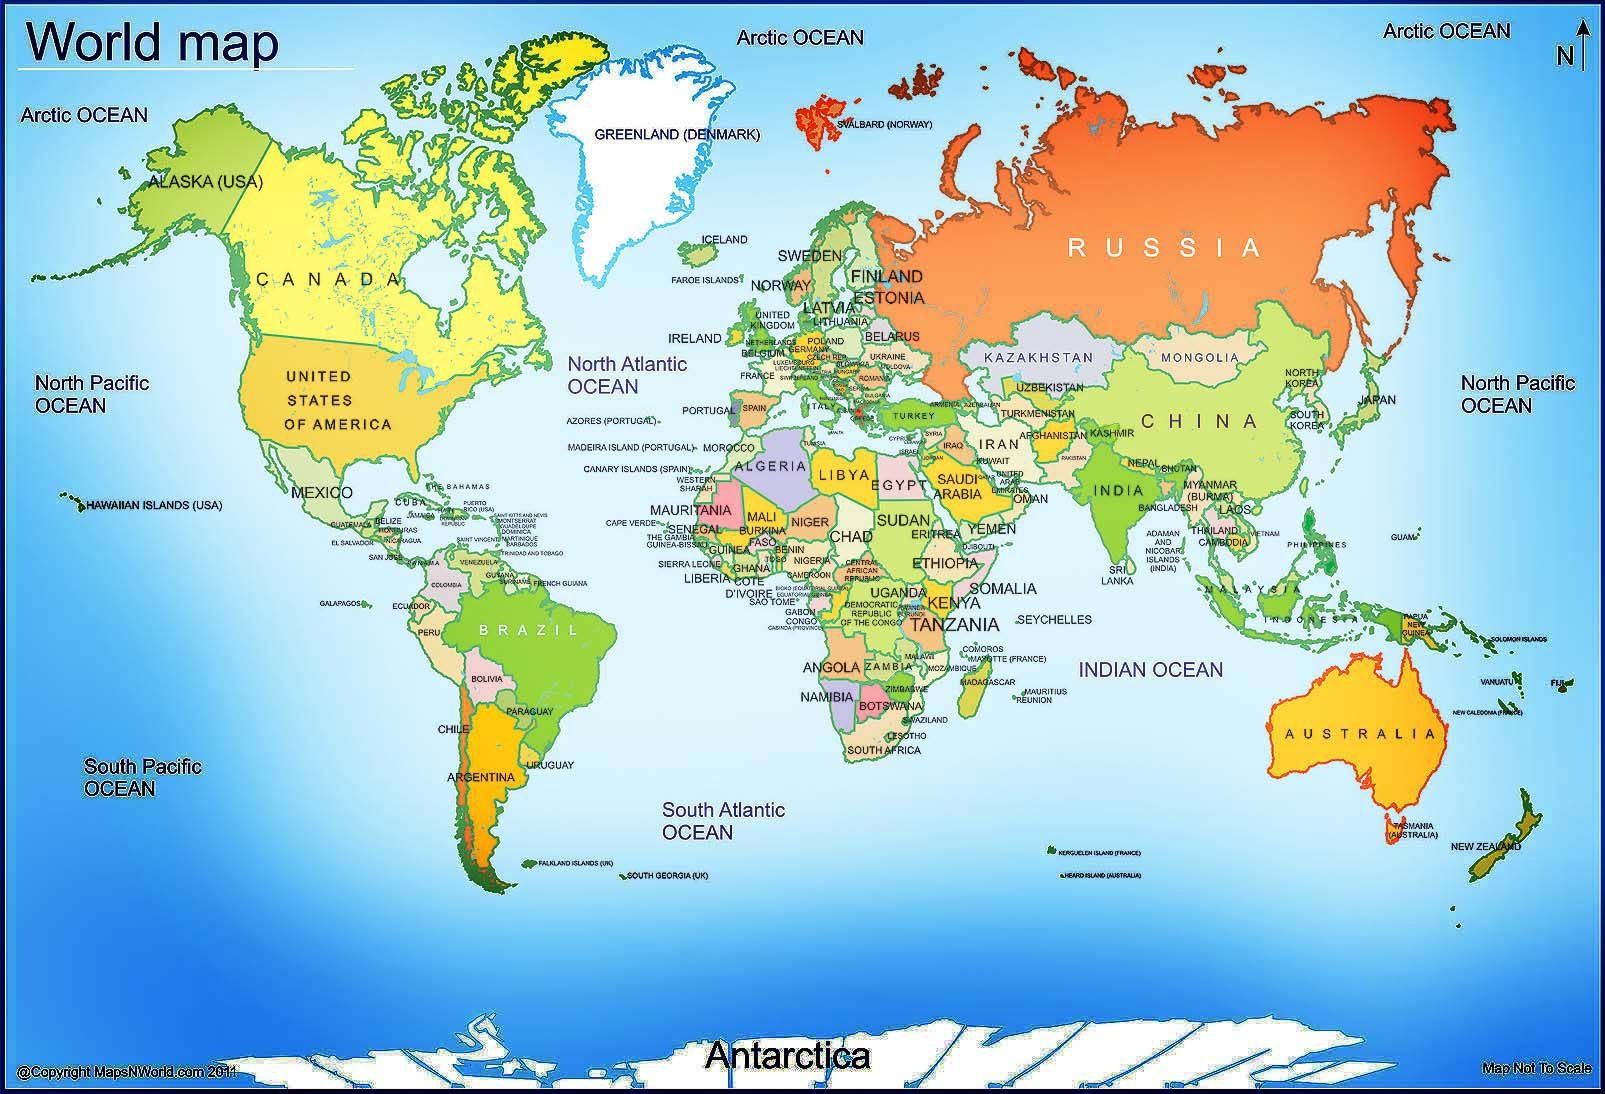 World Map - Free Large Images   Maps   World Map With Countries - Free Printable World Map